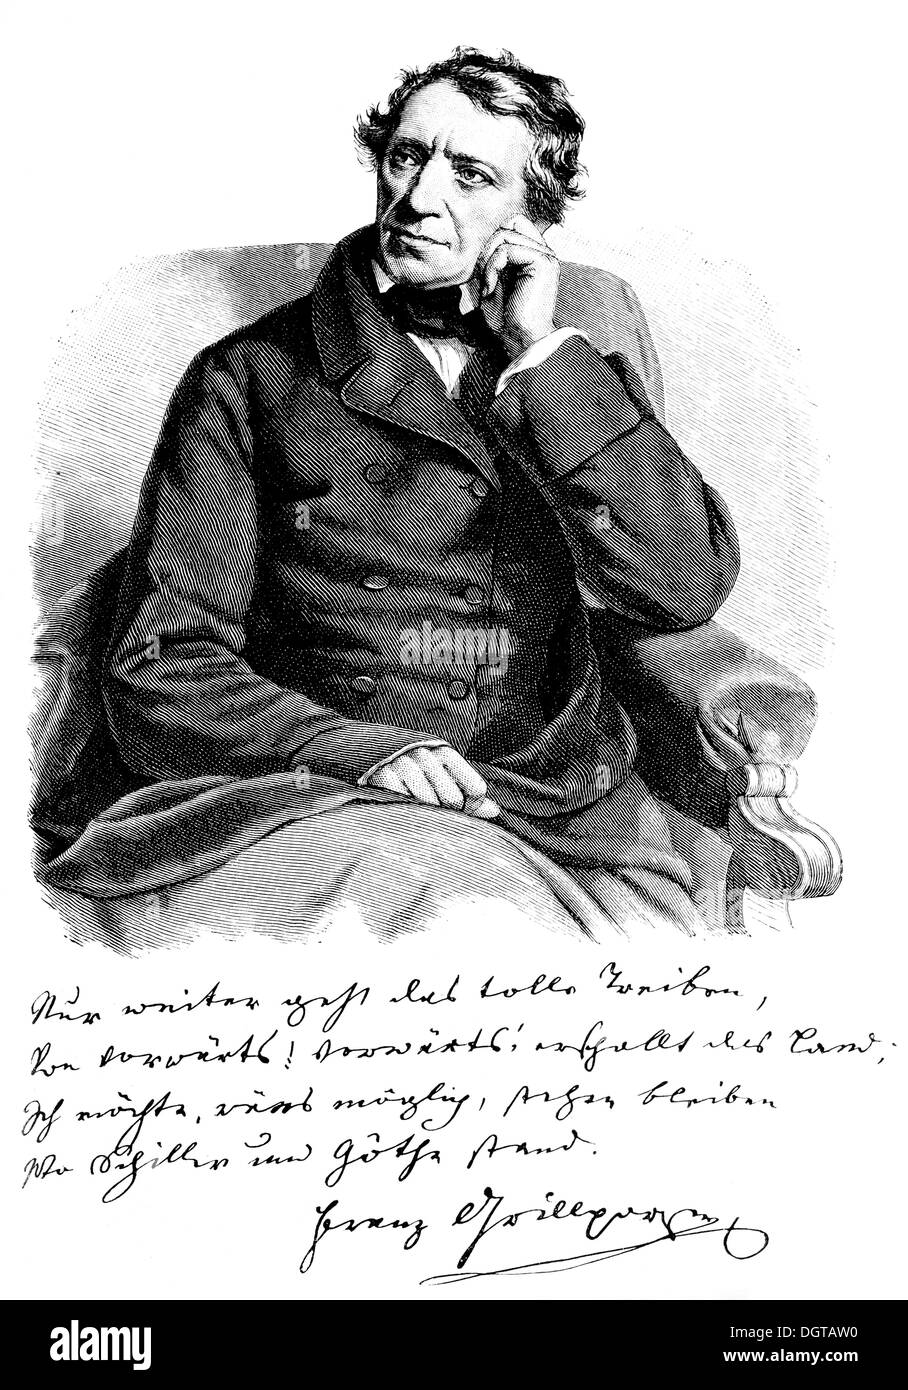 Franz Grillparzer, taken directly from life, 1858, historic illustration from History of German Literature from Stock Photo